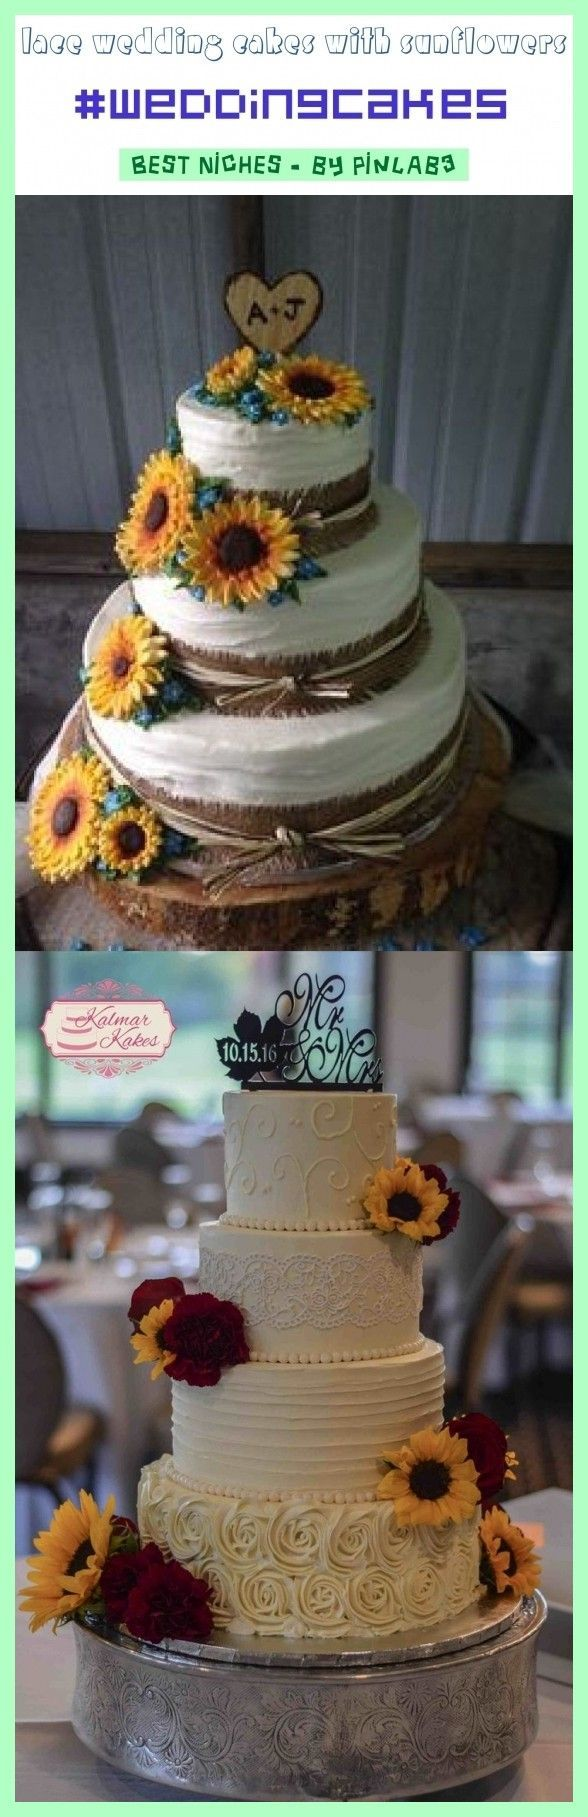 Lace wedding cakes with sunflowers #wedding #cakes #sunflowers #spitzehochzeitstorten #sonnenblumen #gâteaux #mariage #dentelle #tournesols Spitzehochzeitstorten mit Sonnenblumen ; gâteaux de mariage en dentelle avec tournesols ; pasteles de boda de encaje con girasoles ; lace wedding cakes vintage, lace wedding cakes with flowers, lace wedding cakes rustic, floral lace wedding cakes, lace wedding cakes elegant, gold lace wedding #rustic wedding cake sunflowers